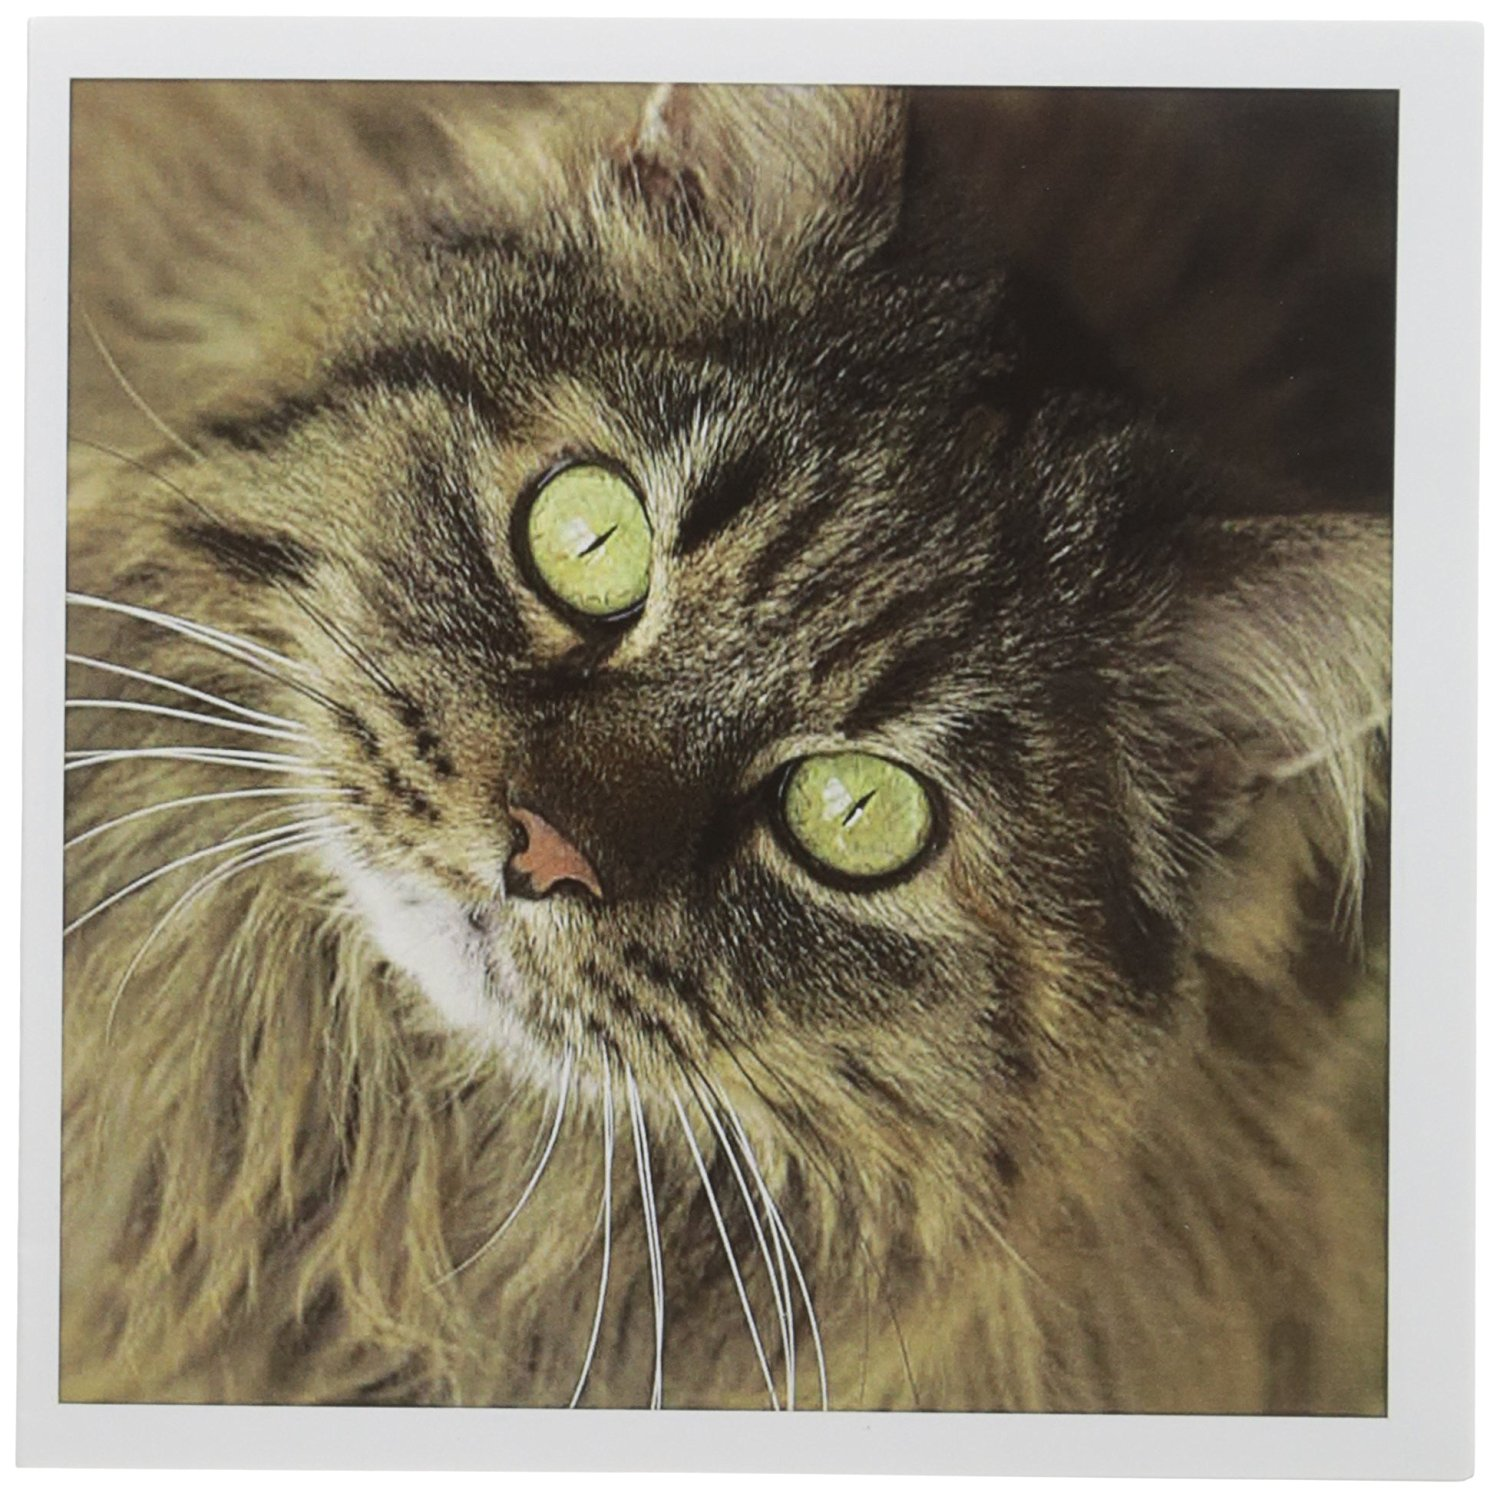 3dRose Maine coon cat, Santa Fe, New Mexico - US32 JMR0448 - Julien McRoberts - Greeting Cards, 6 x 6 inches, set of 12 (gc_92674_2)